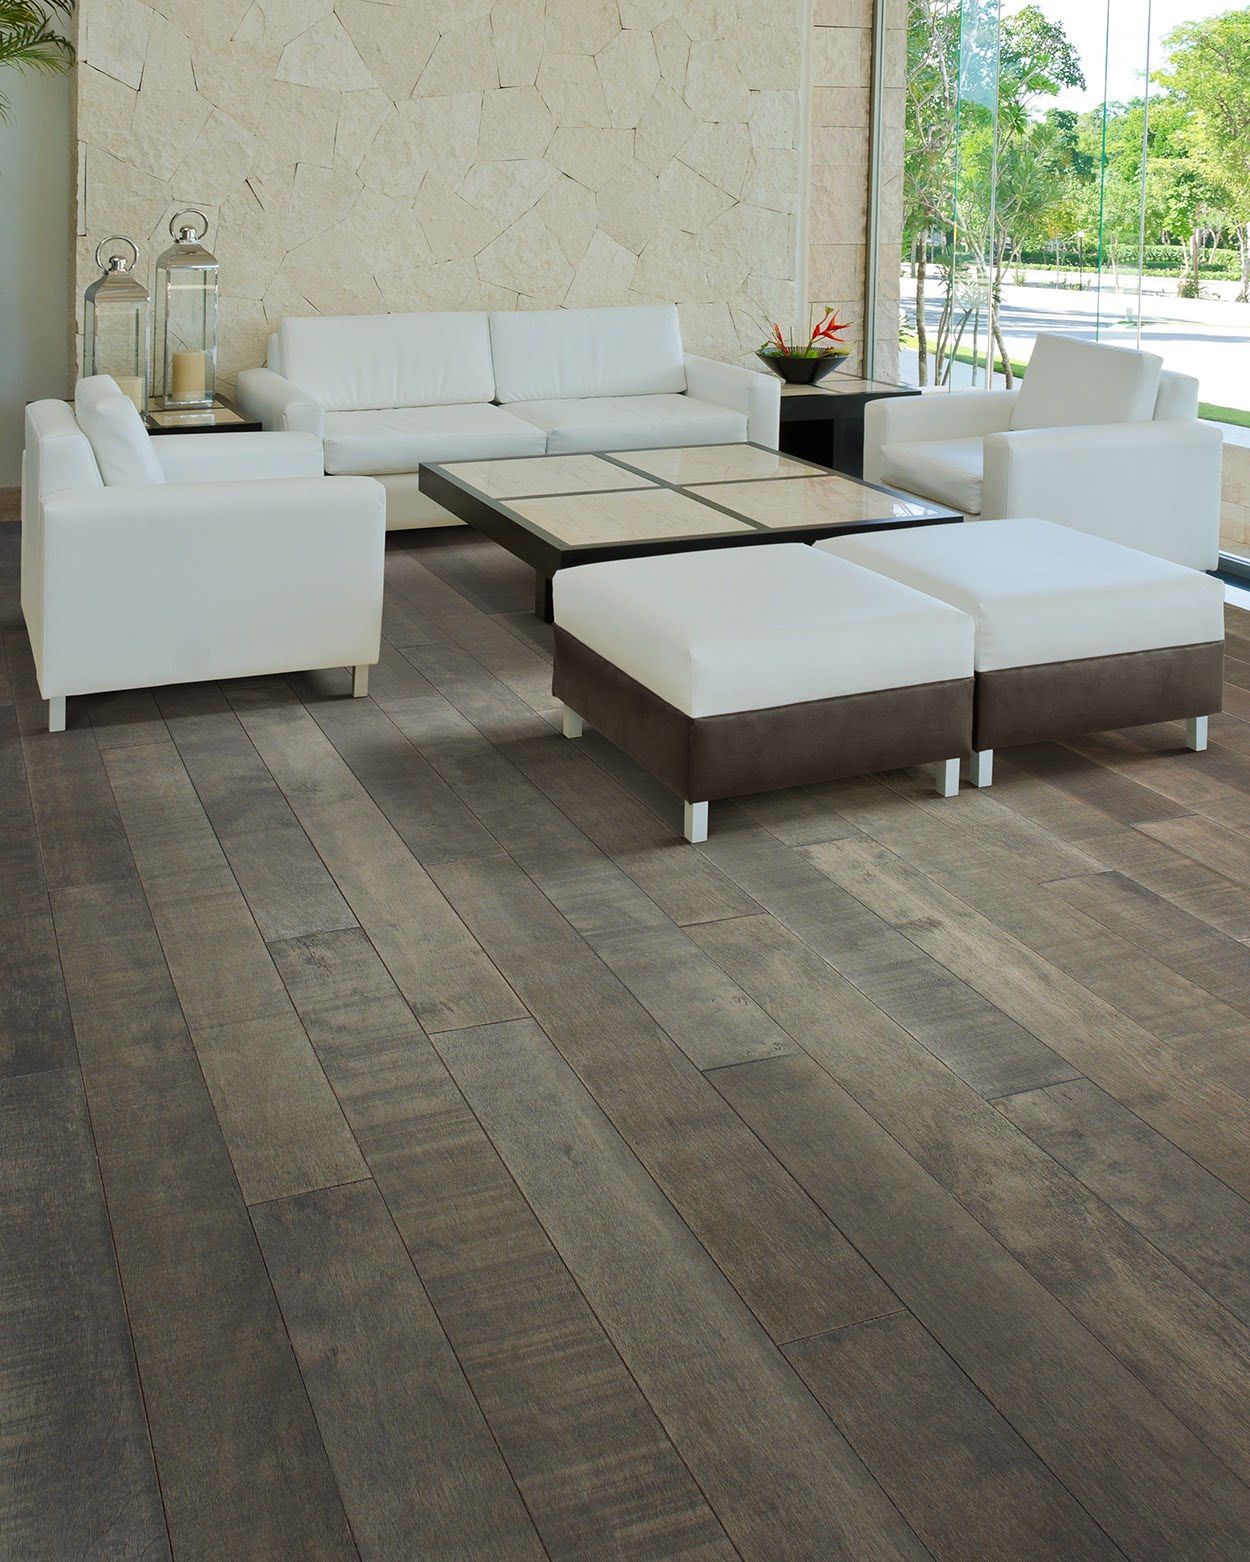 Summer Storm Is A Stunning Color Way Featuring Varied Grey Tones And Natural Saw Marks To Accent The Authentic Character Of The Woo Home Decor Home Flooring